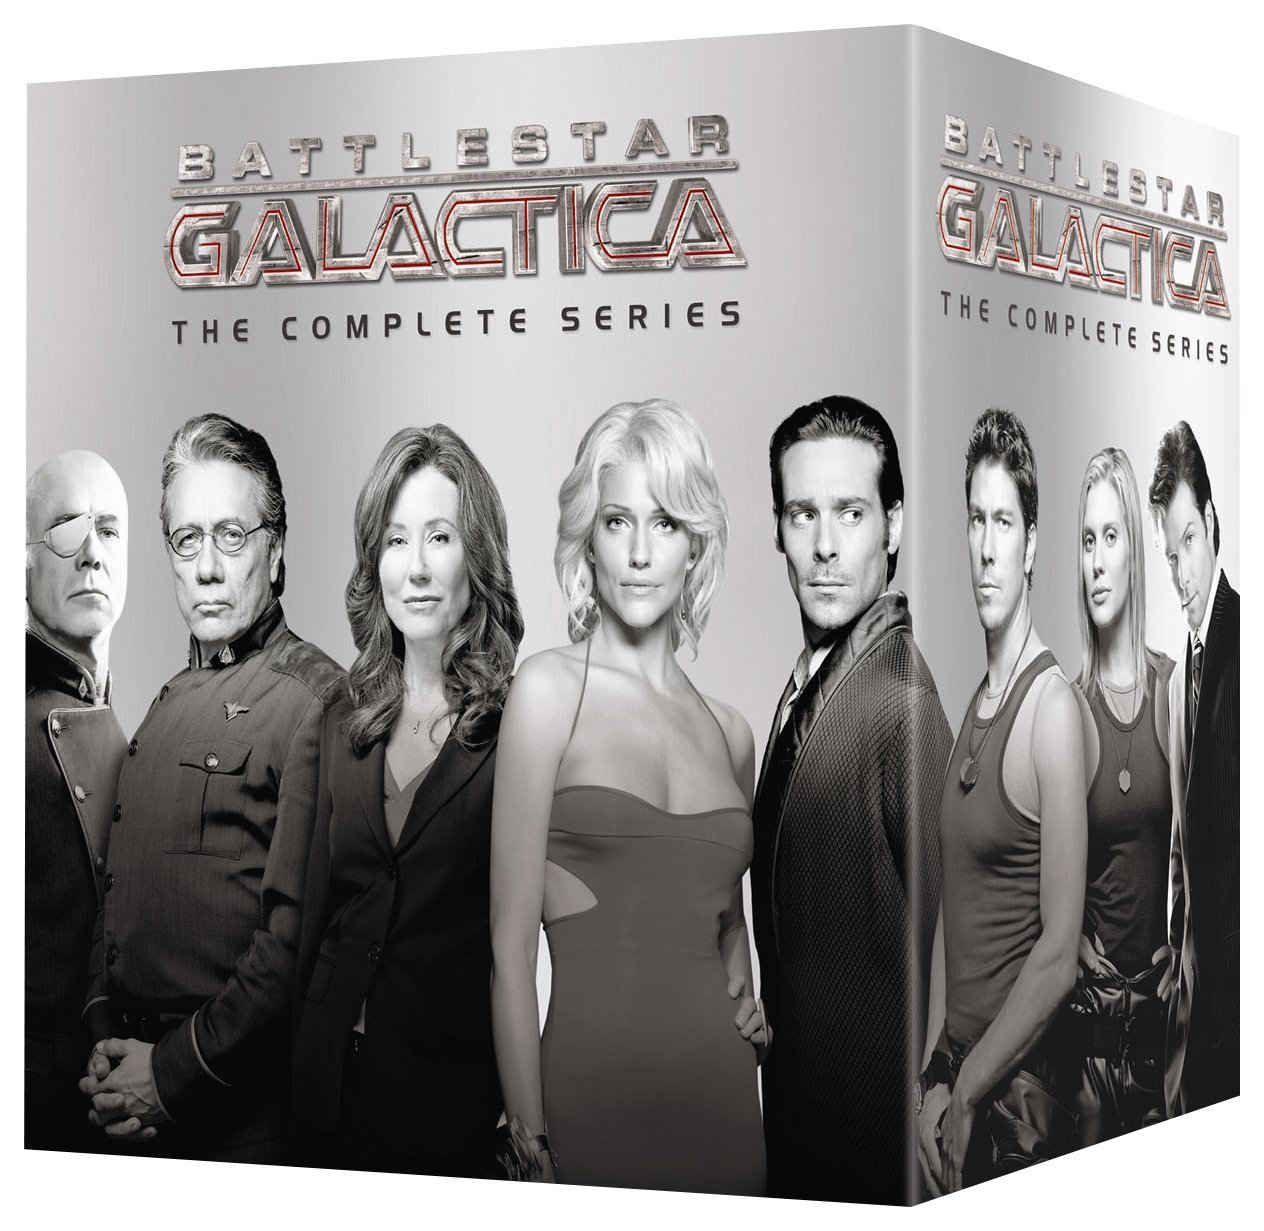 Battlestar Galactica (2004): The Complete Series [DVD]